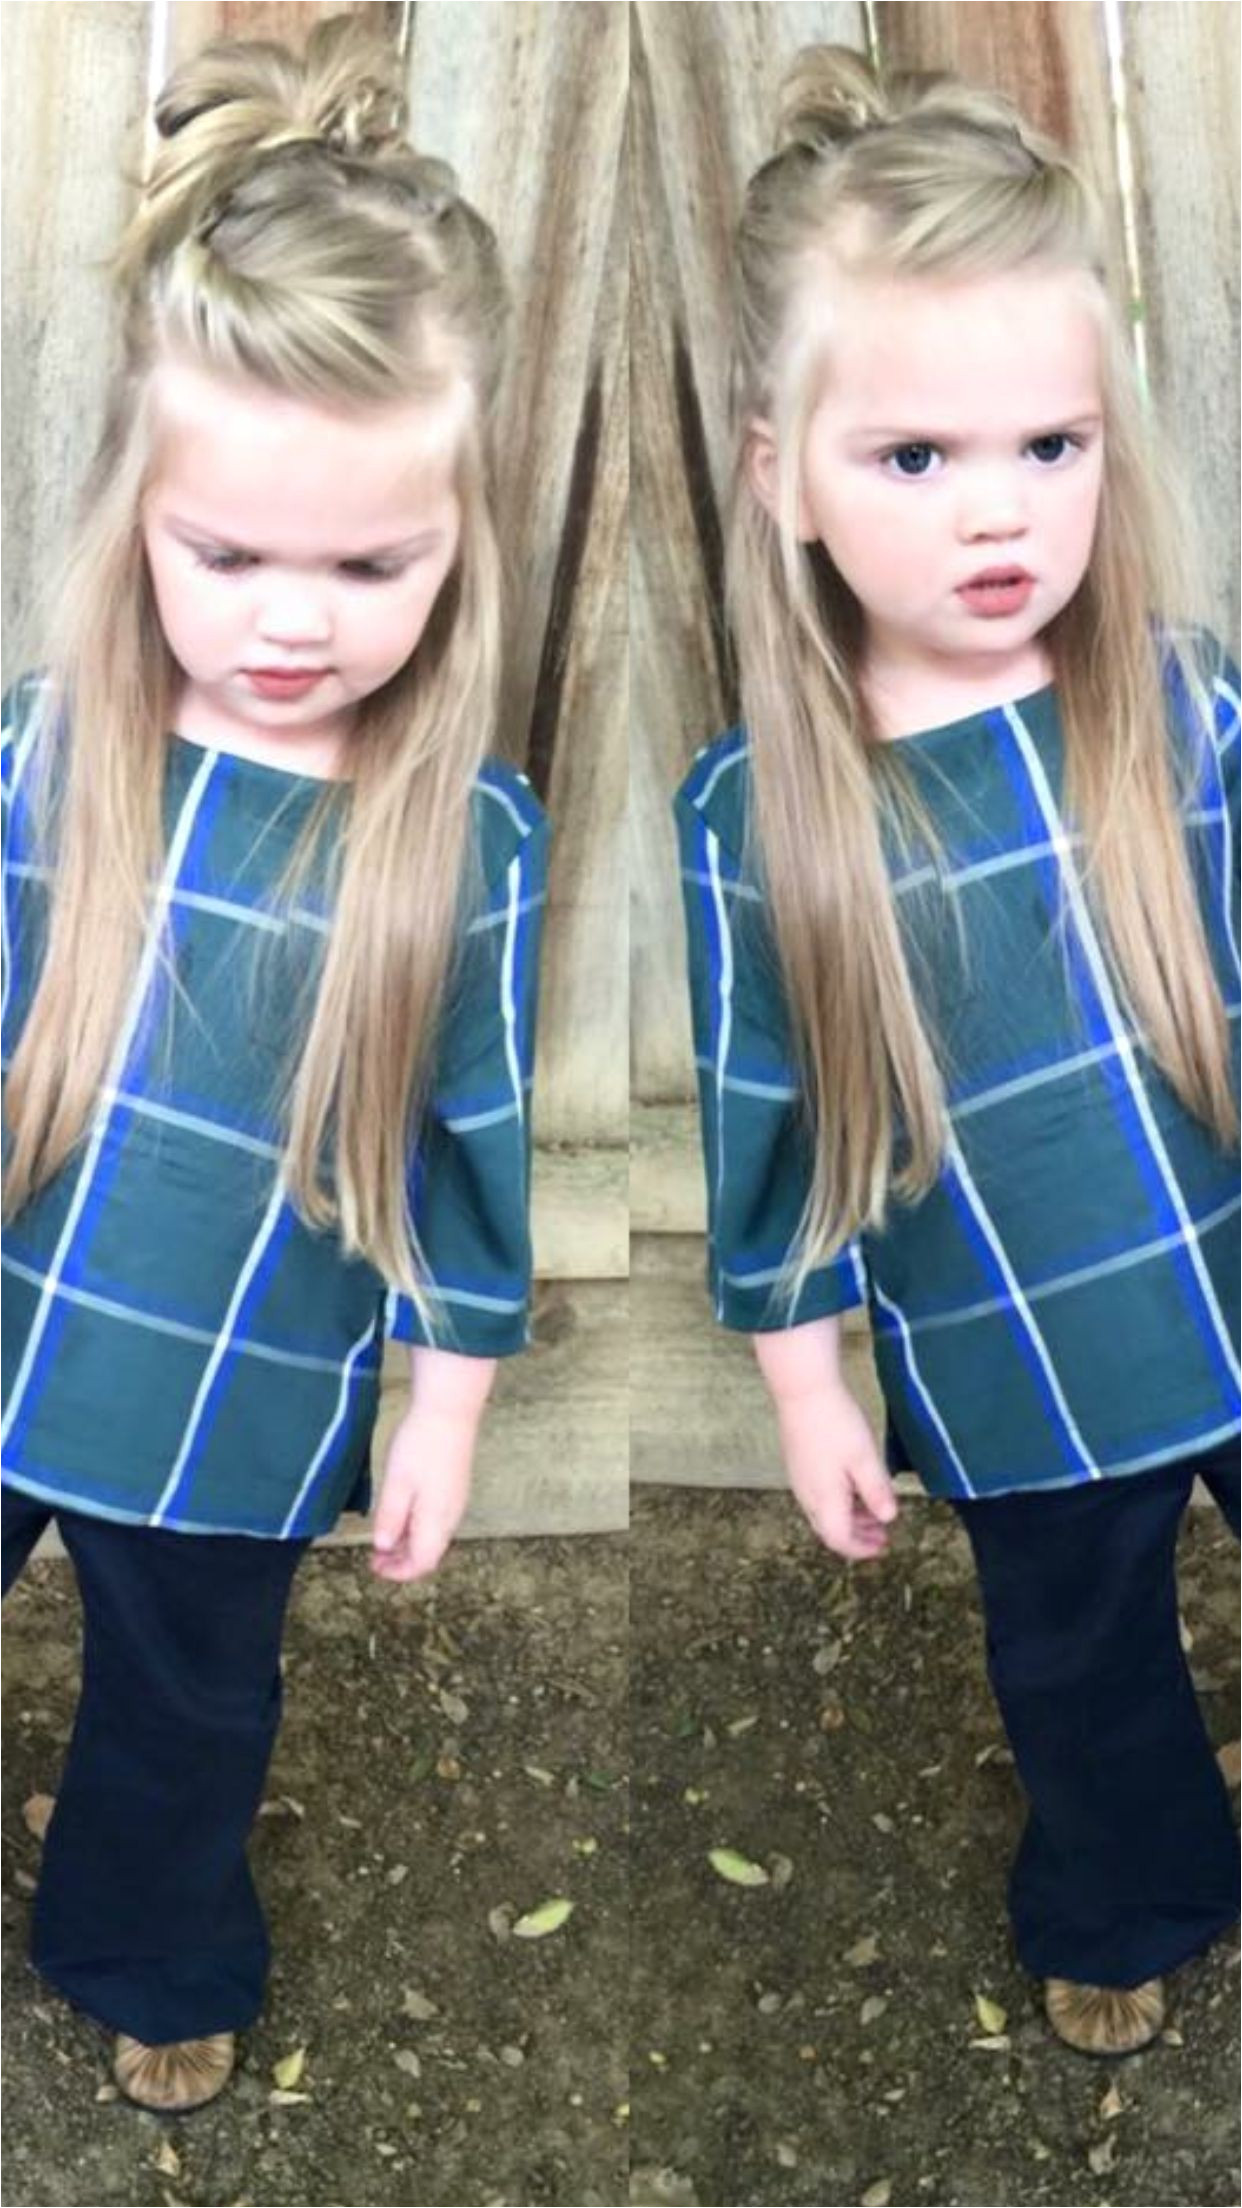 Hairstyle for Small Girls Beautiful Little Girl Hairstyles Half Up Half Down top Knot Messy Bun